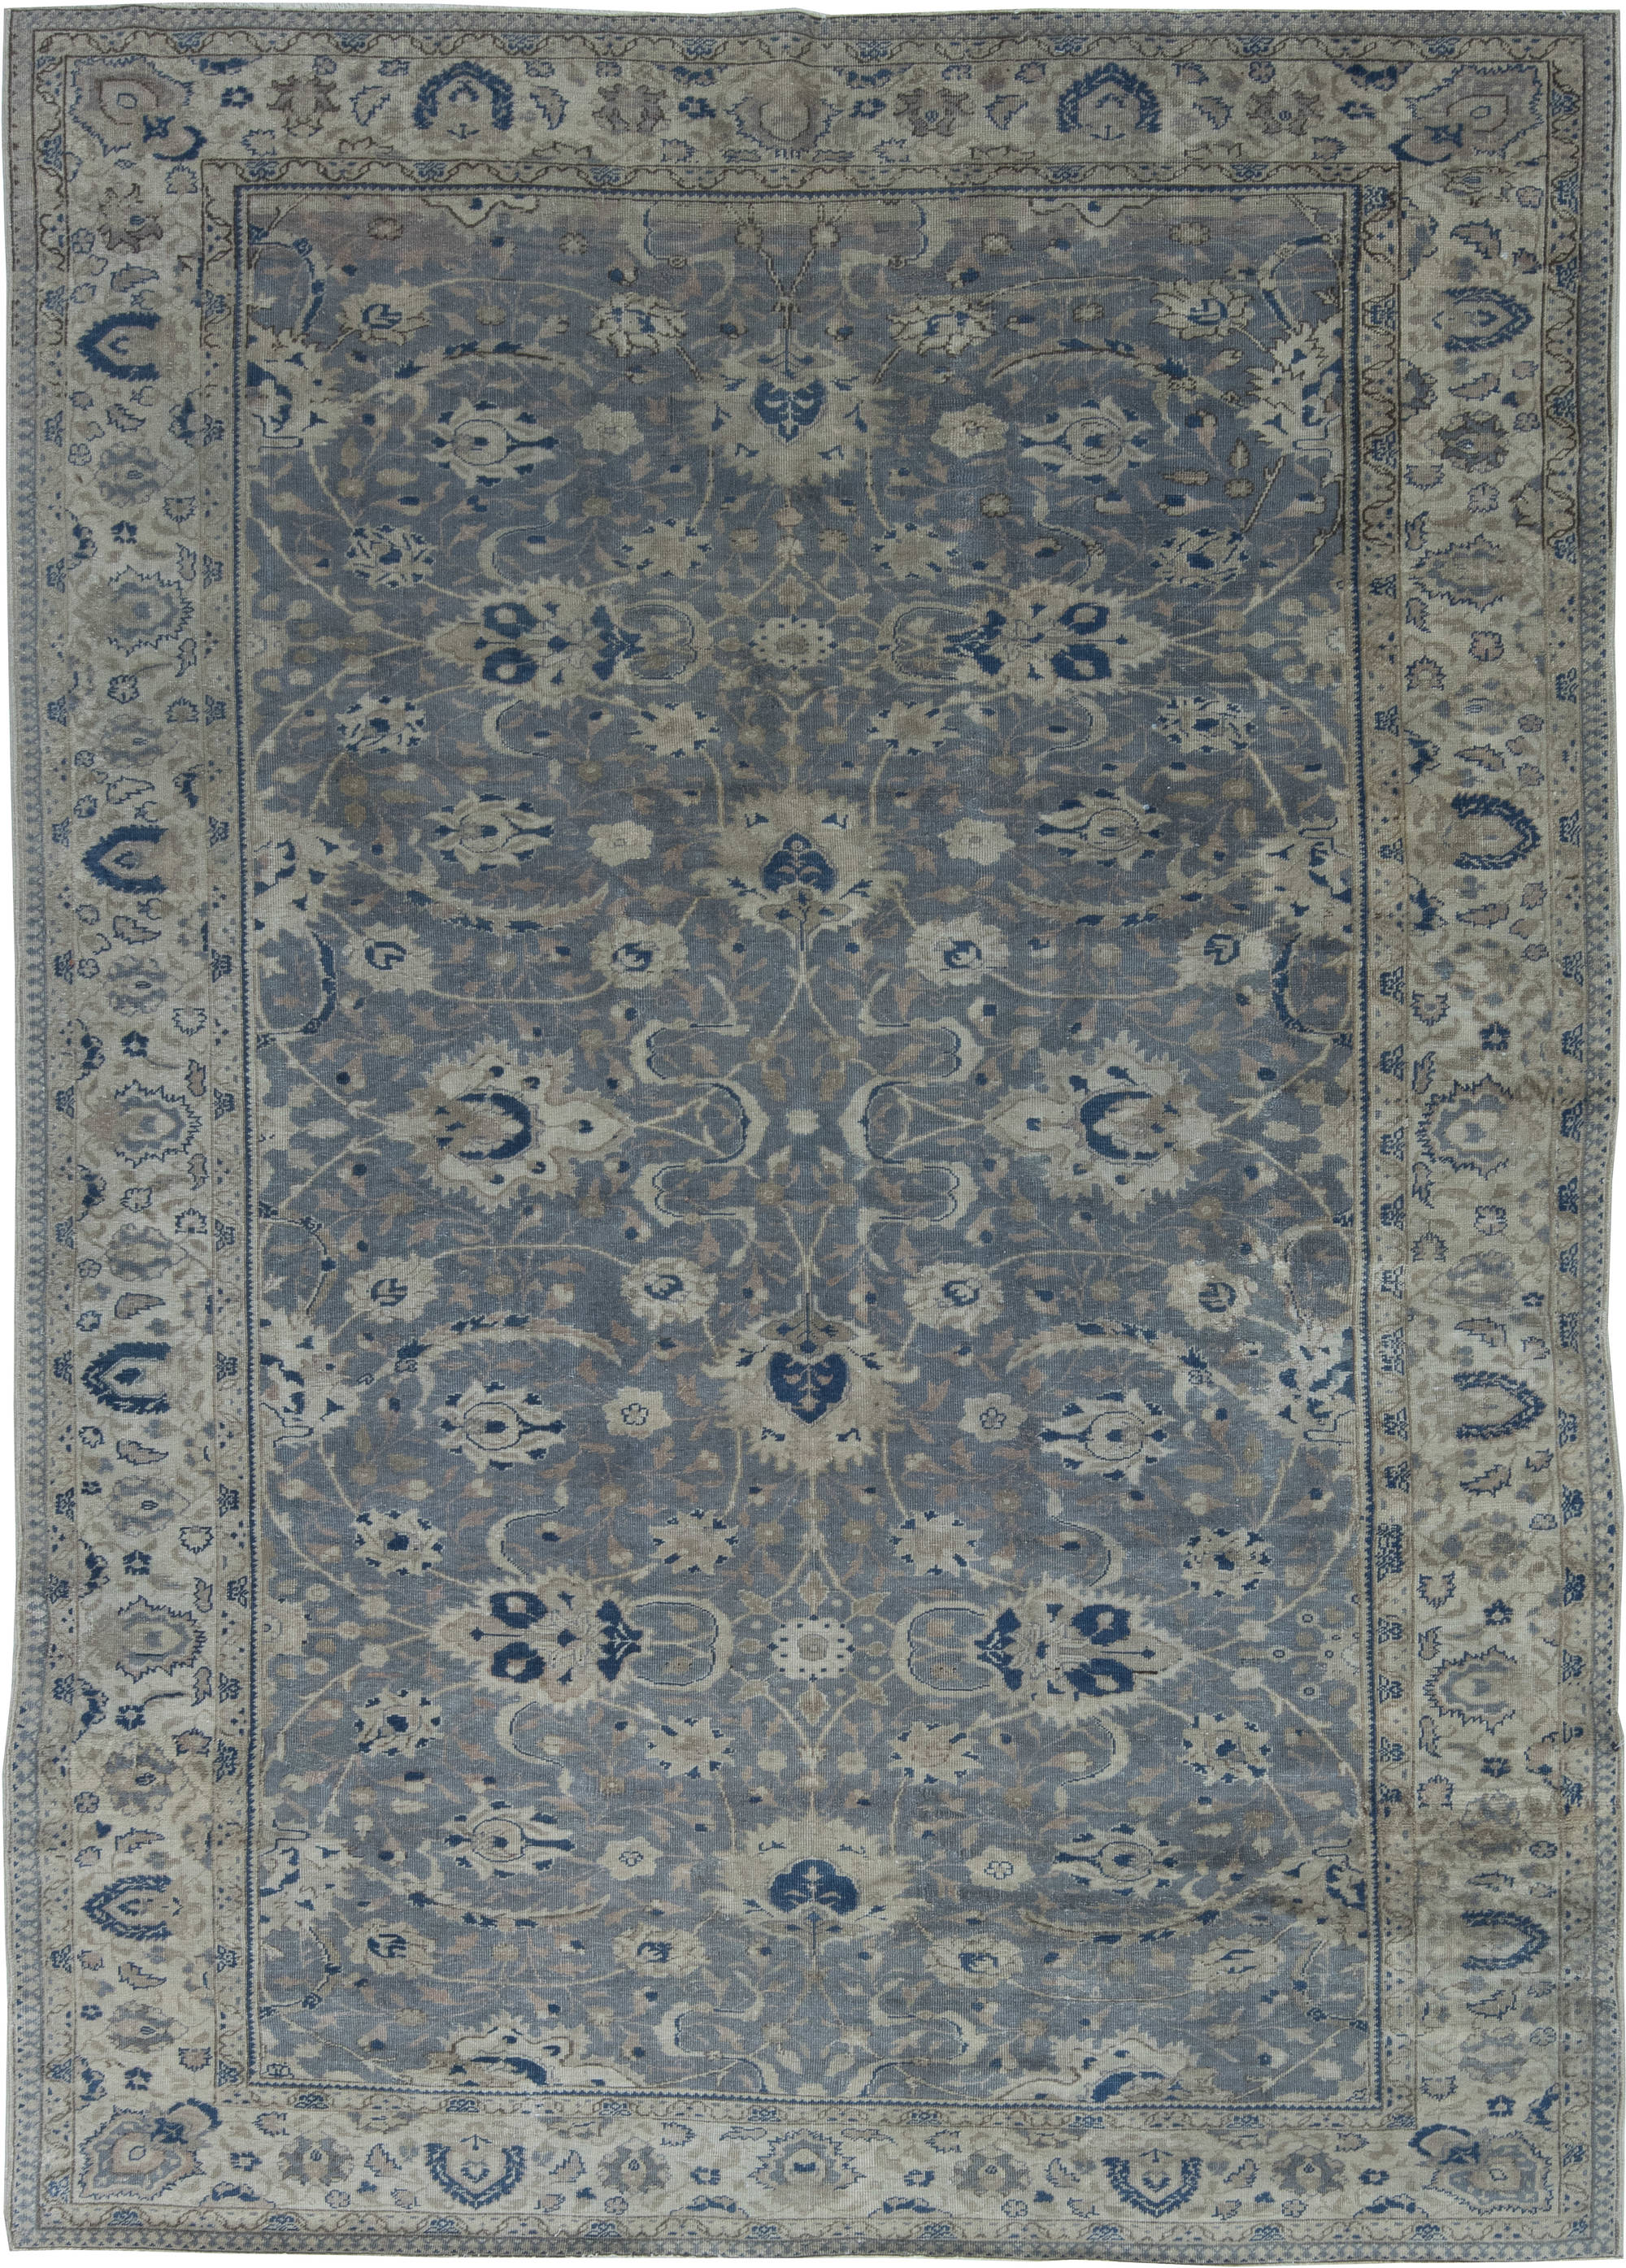 Antique Turkish Hereke Rug BB6405